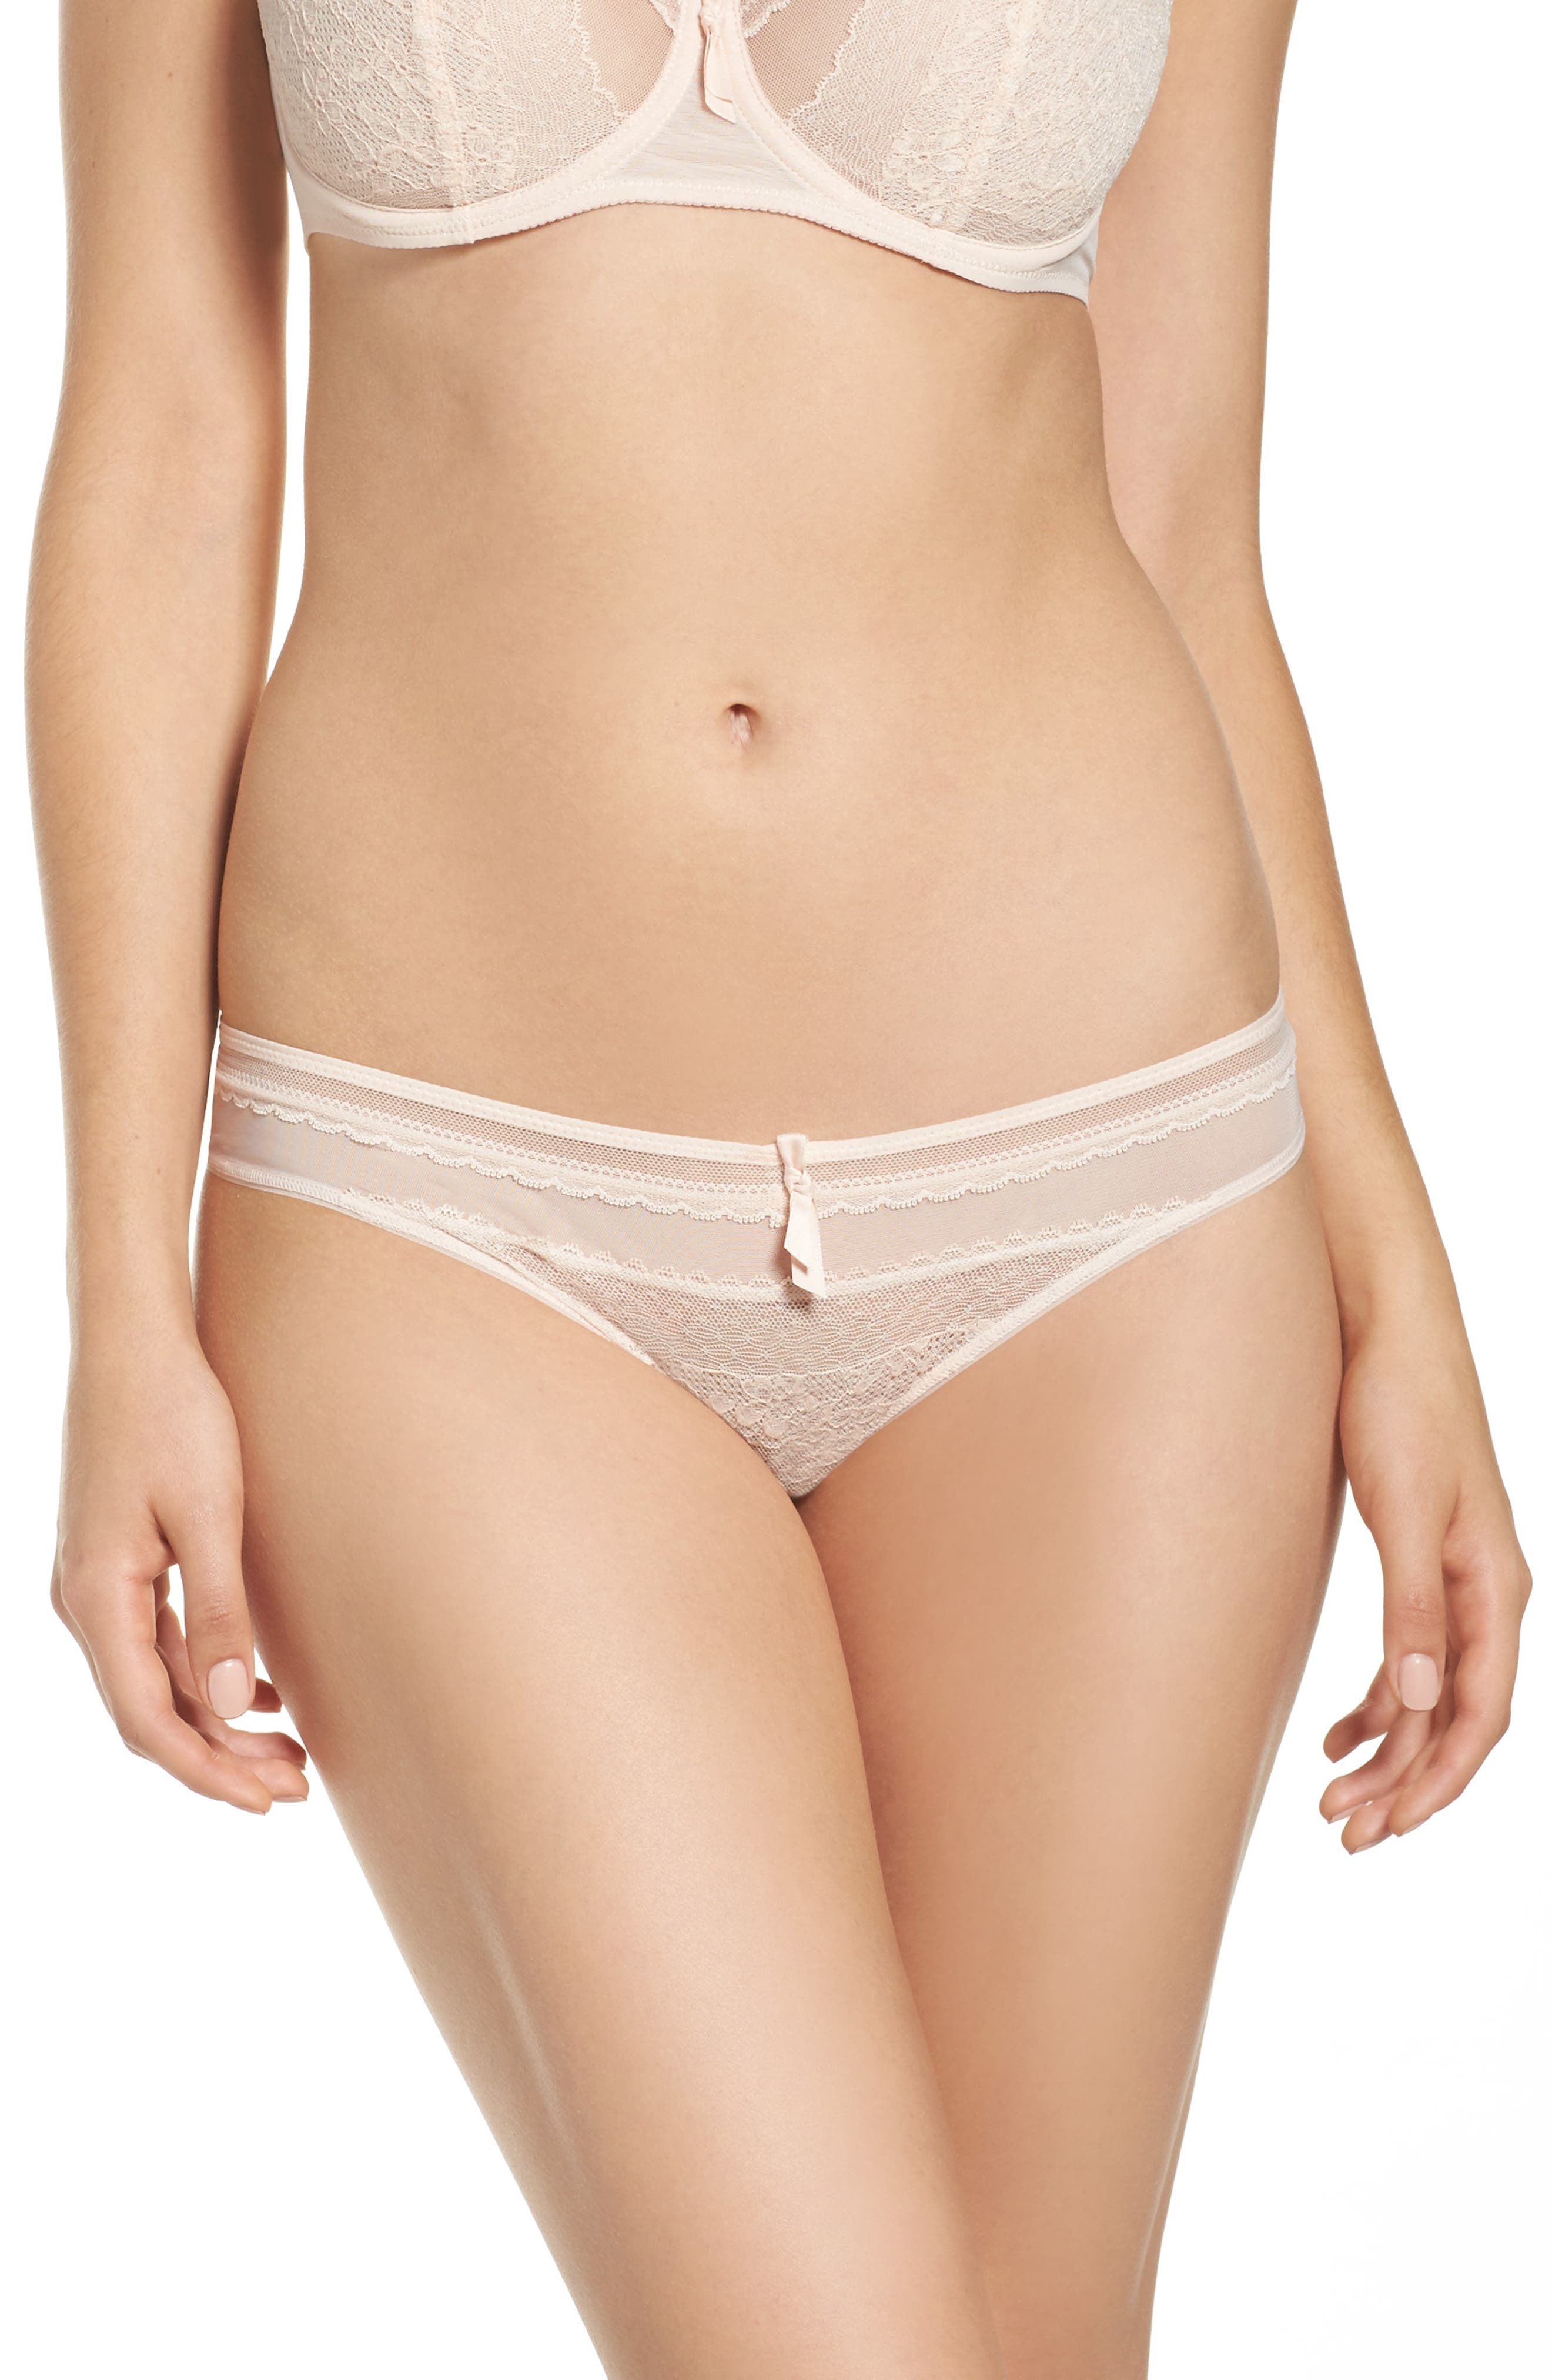 Passionata Women's Embrasse Moi Thong Shop For cG20o